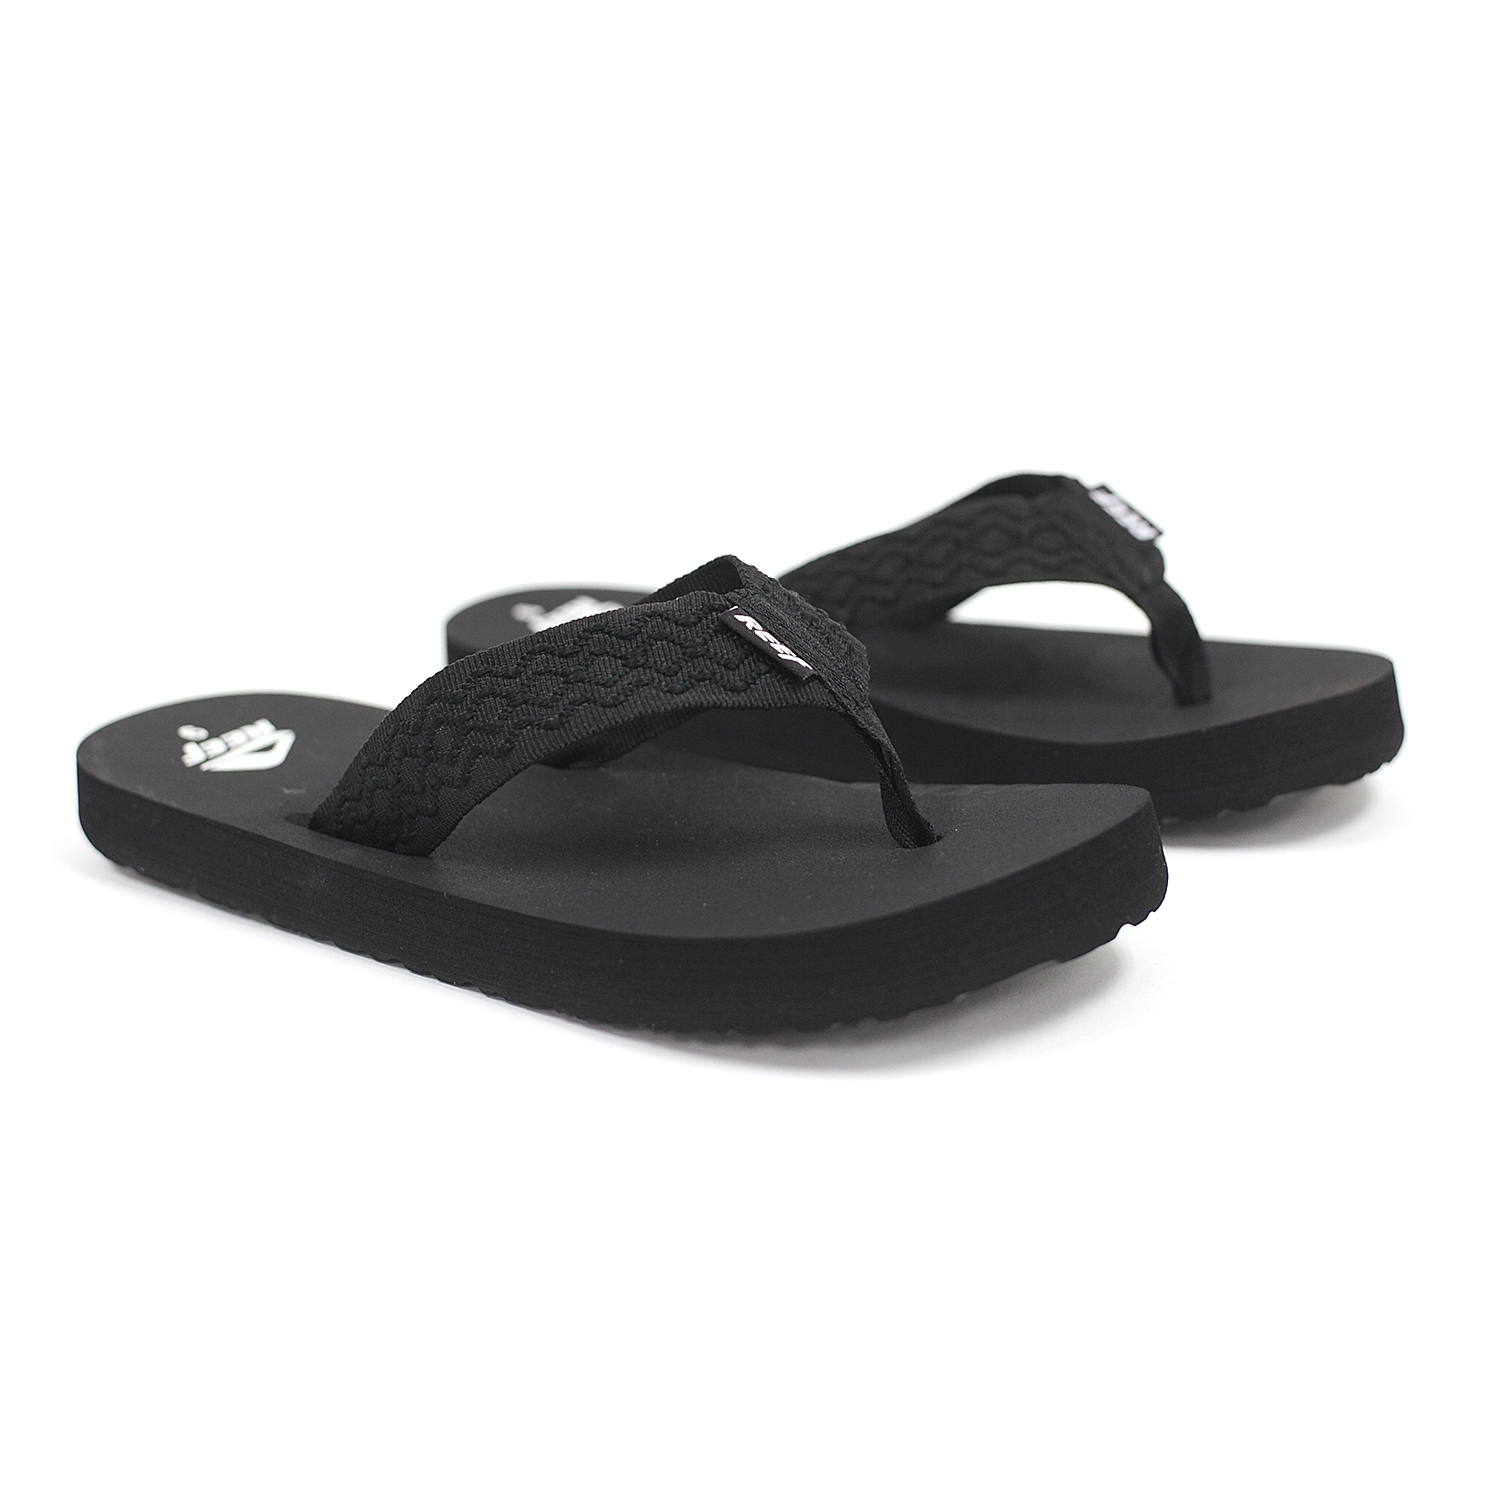 b5034046074f Image is loading Reef-Smoothy-Black-Men-039-s-Sandals